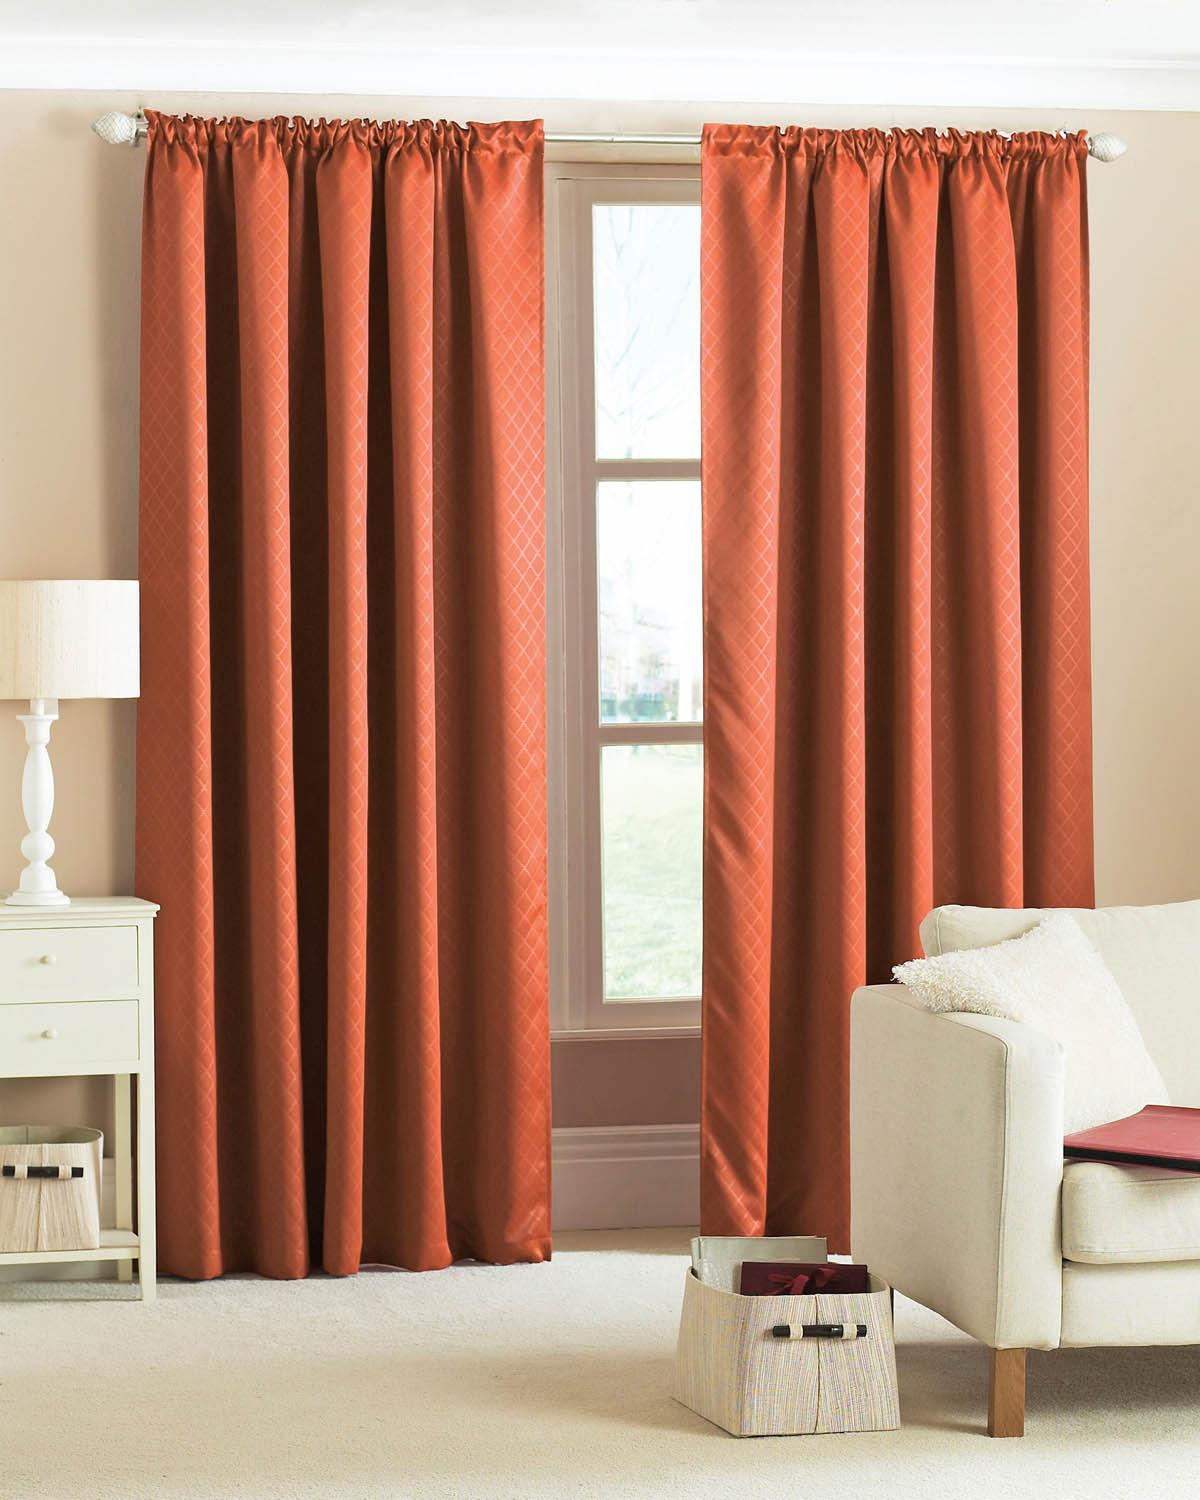 Diamond Woven Blackout Curtains Terracotta Cheap Orange Blackout